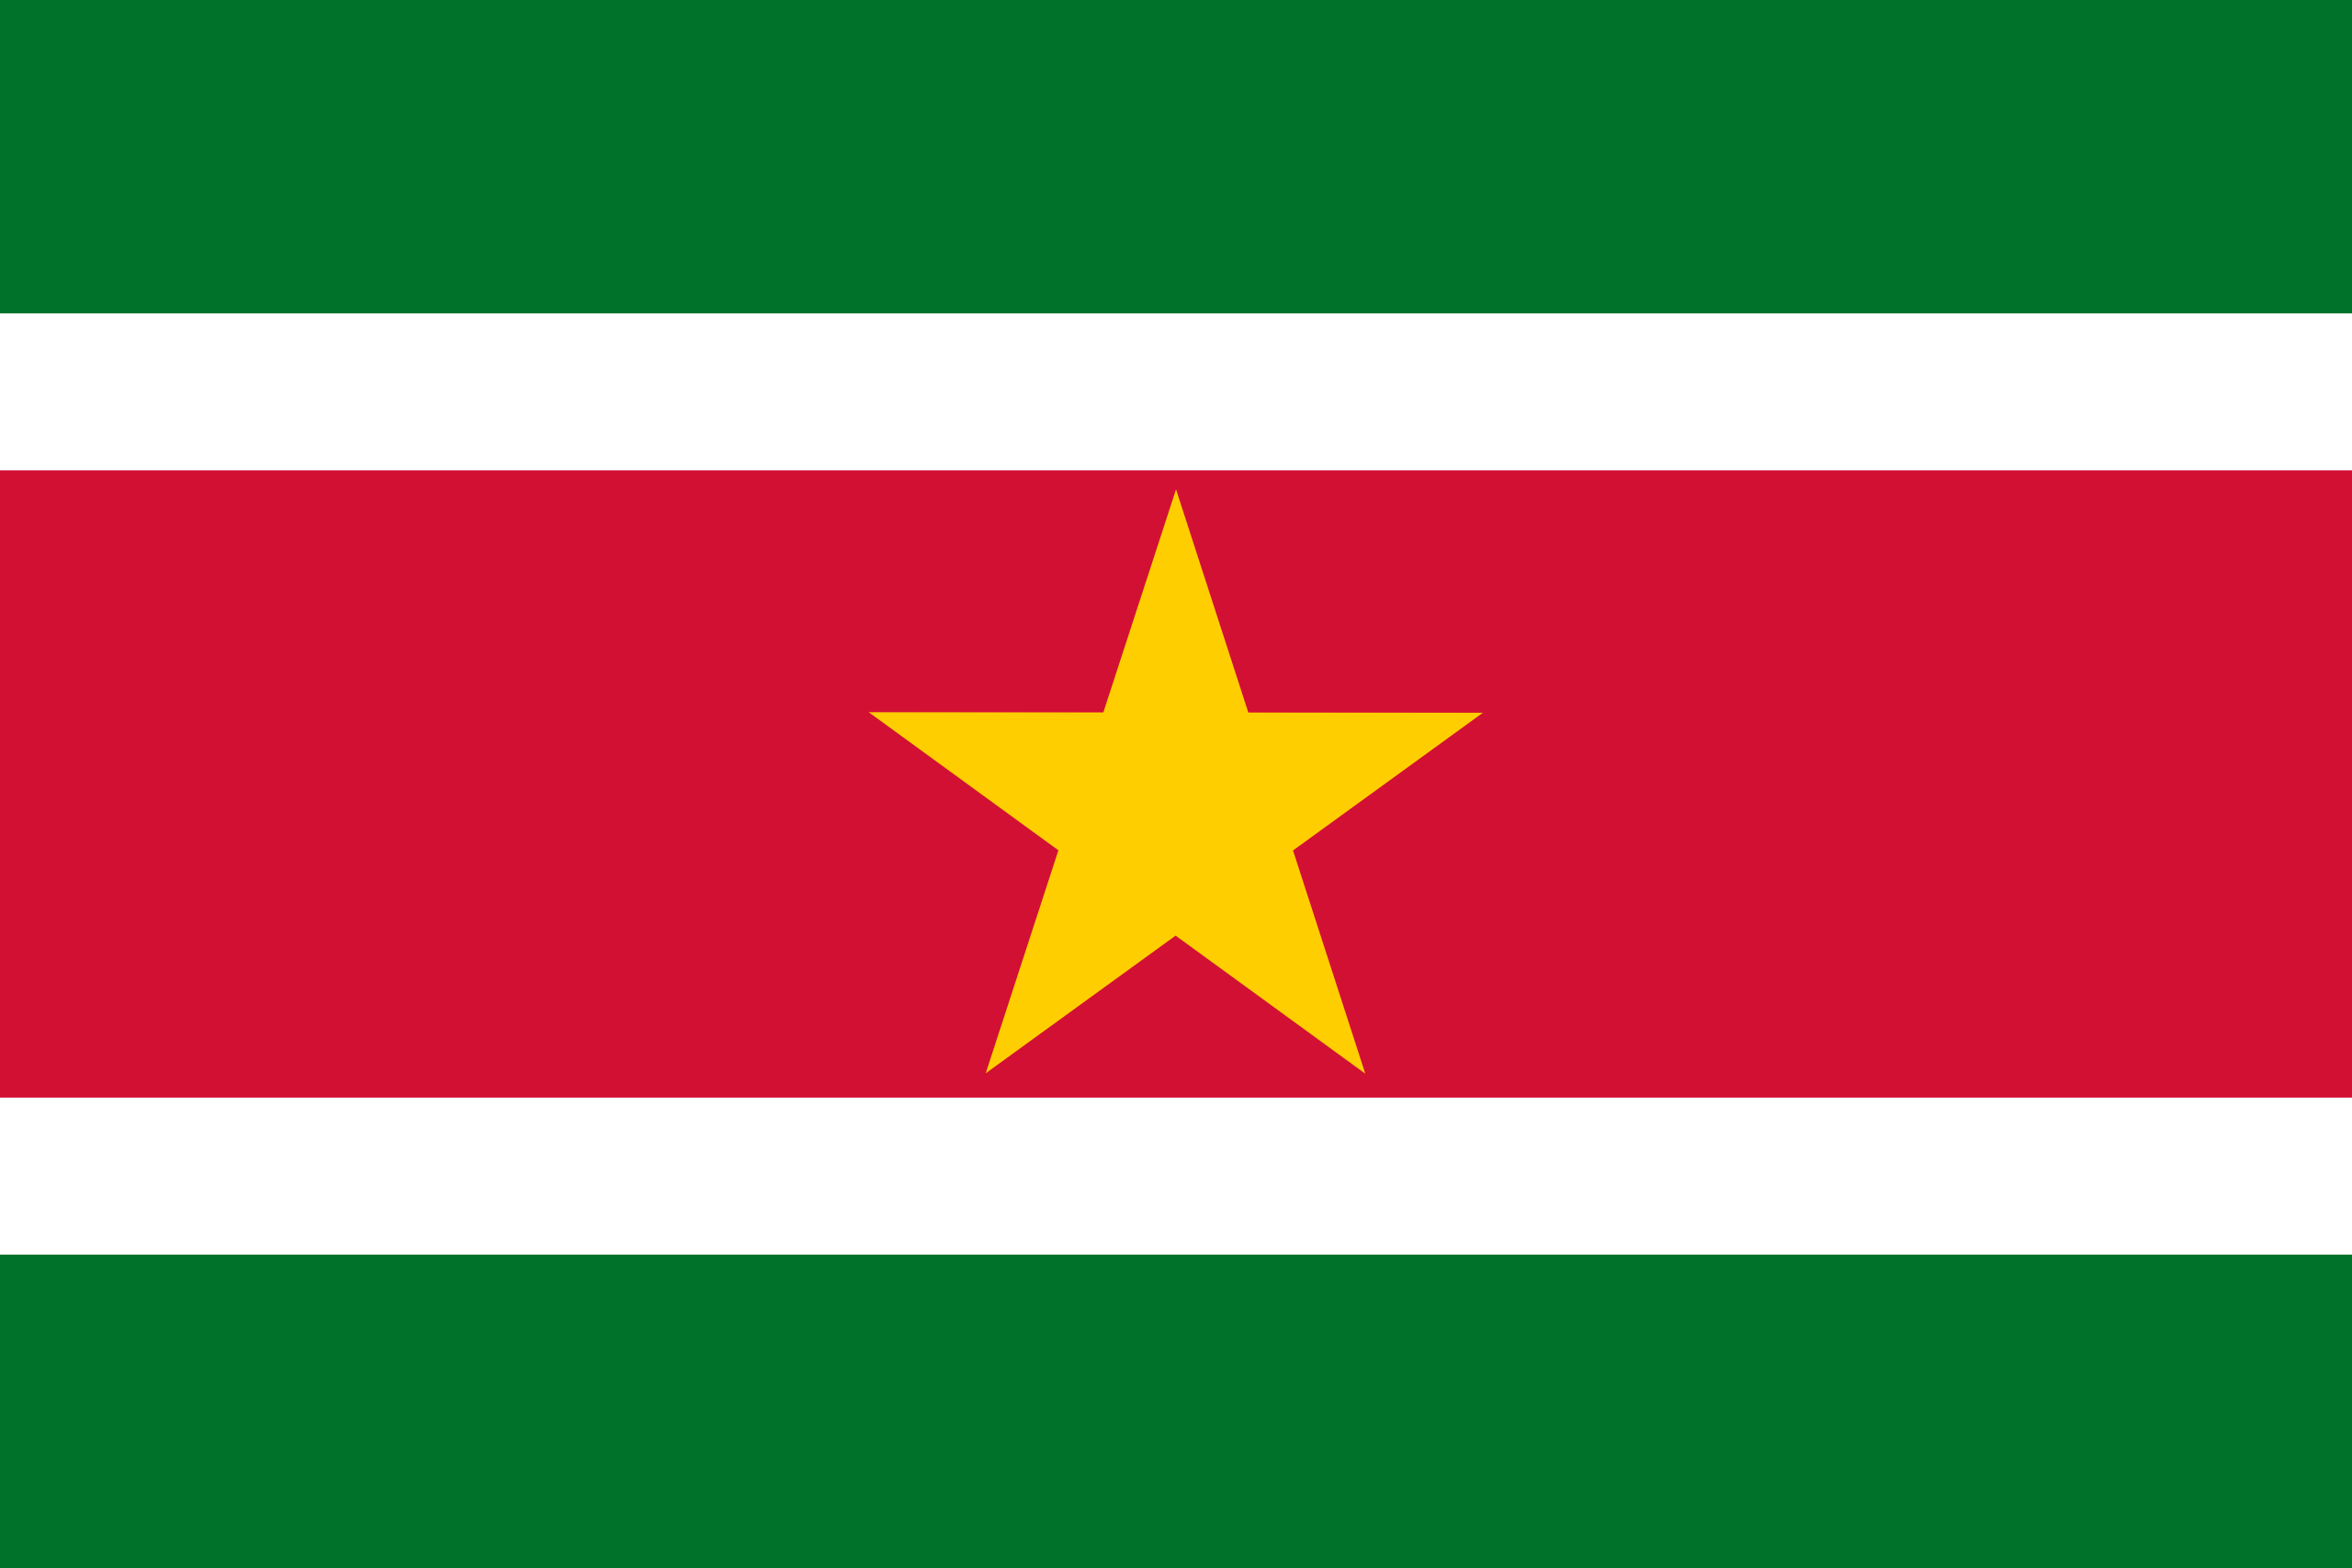 Suriname | Flags of countries